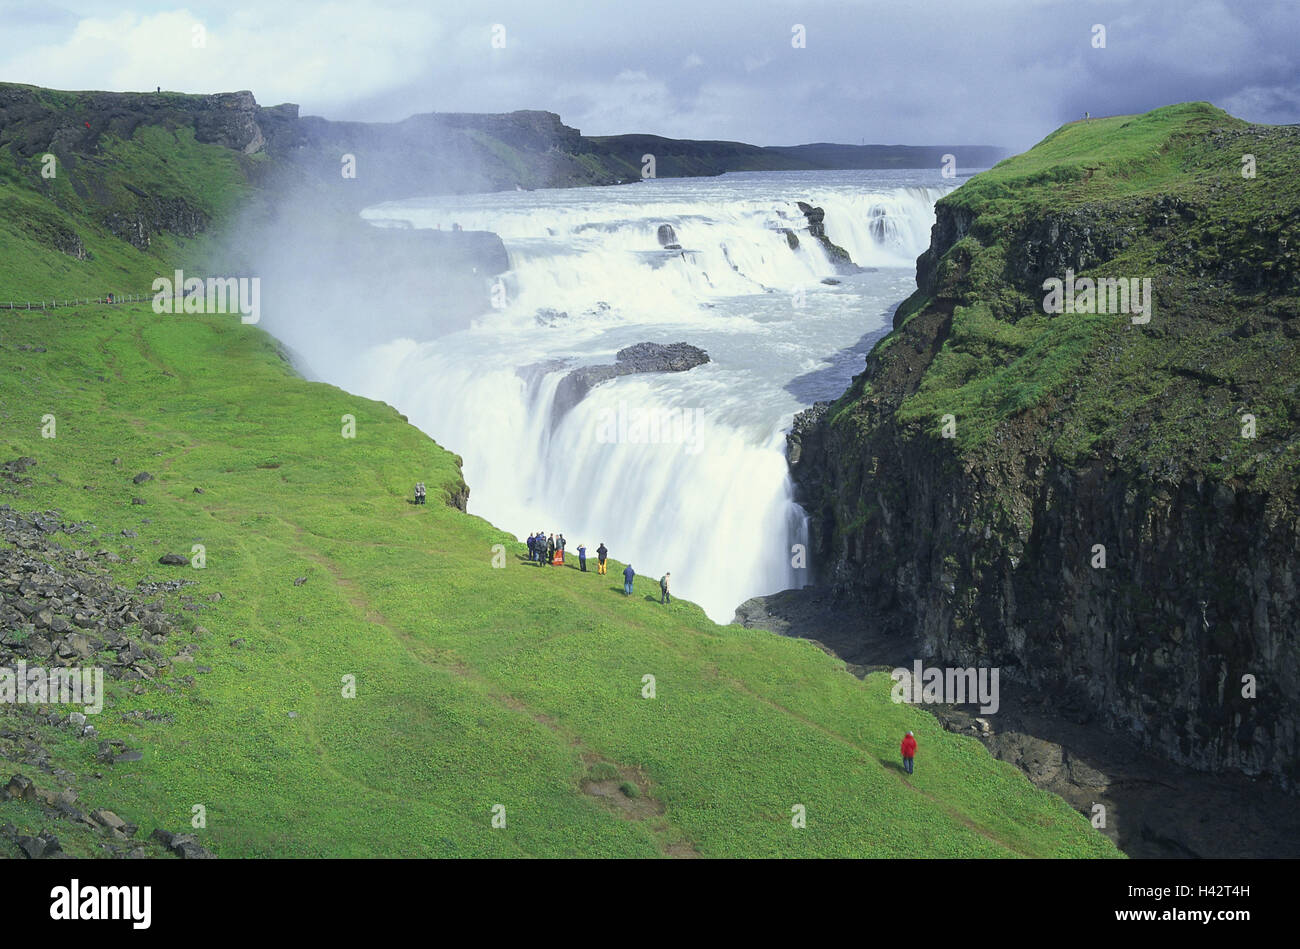 Iceland, Gullfoss, waterfall, tourist, Iceland, island, destination, place of interest, nature, spectacle nature, - Stock Image